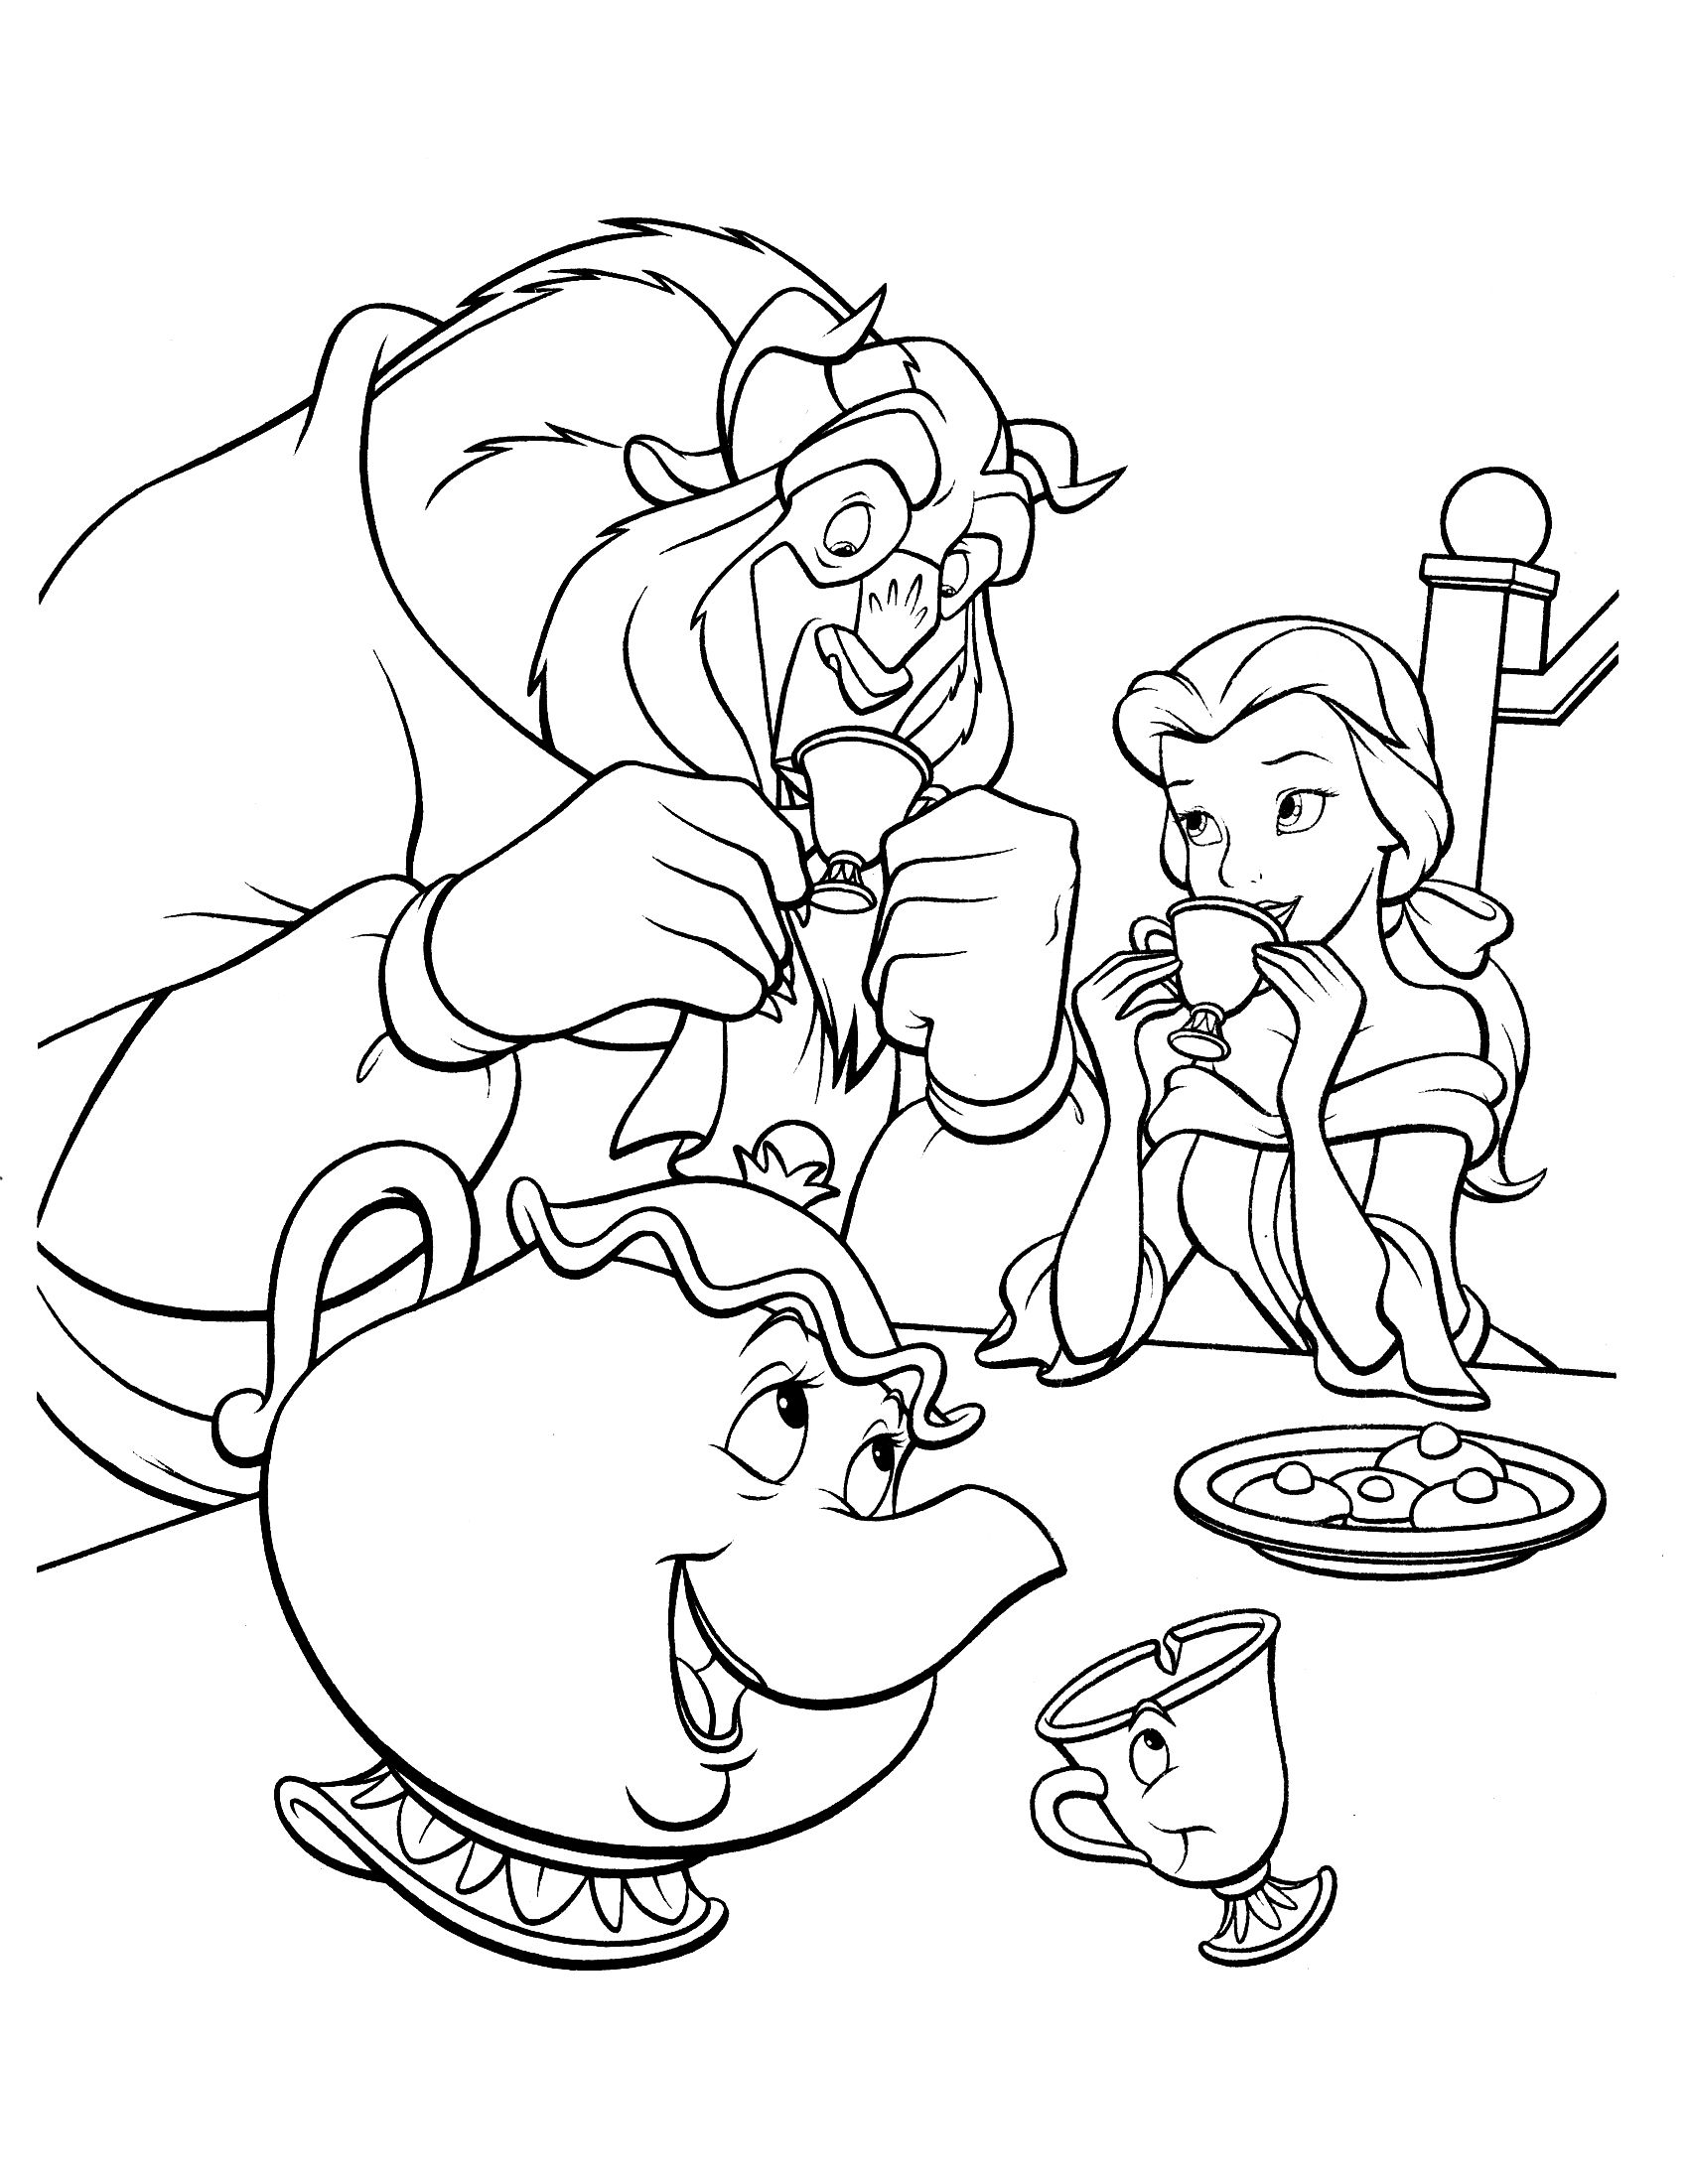 beauty and the beast coloring page | Disney Coloring Pages ...